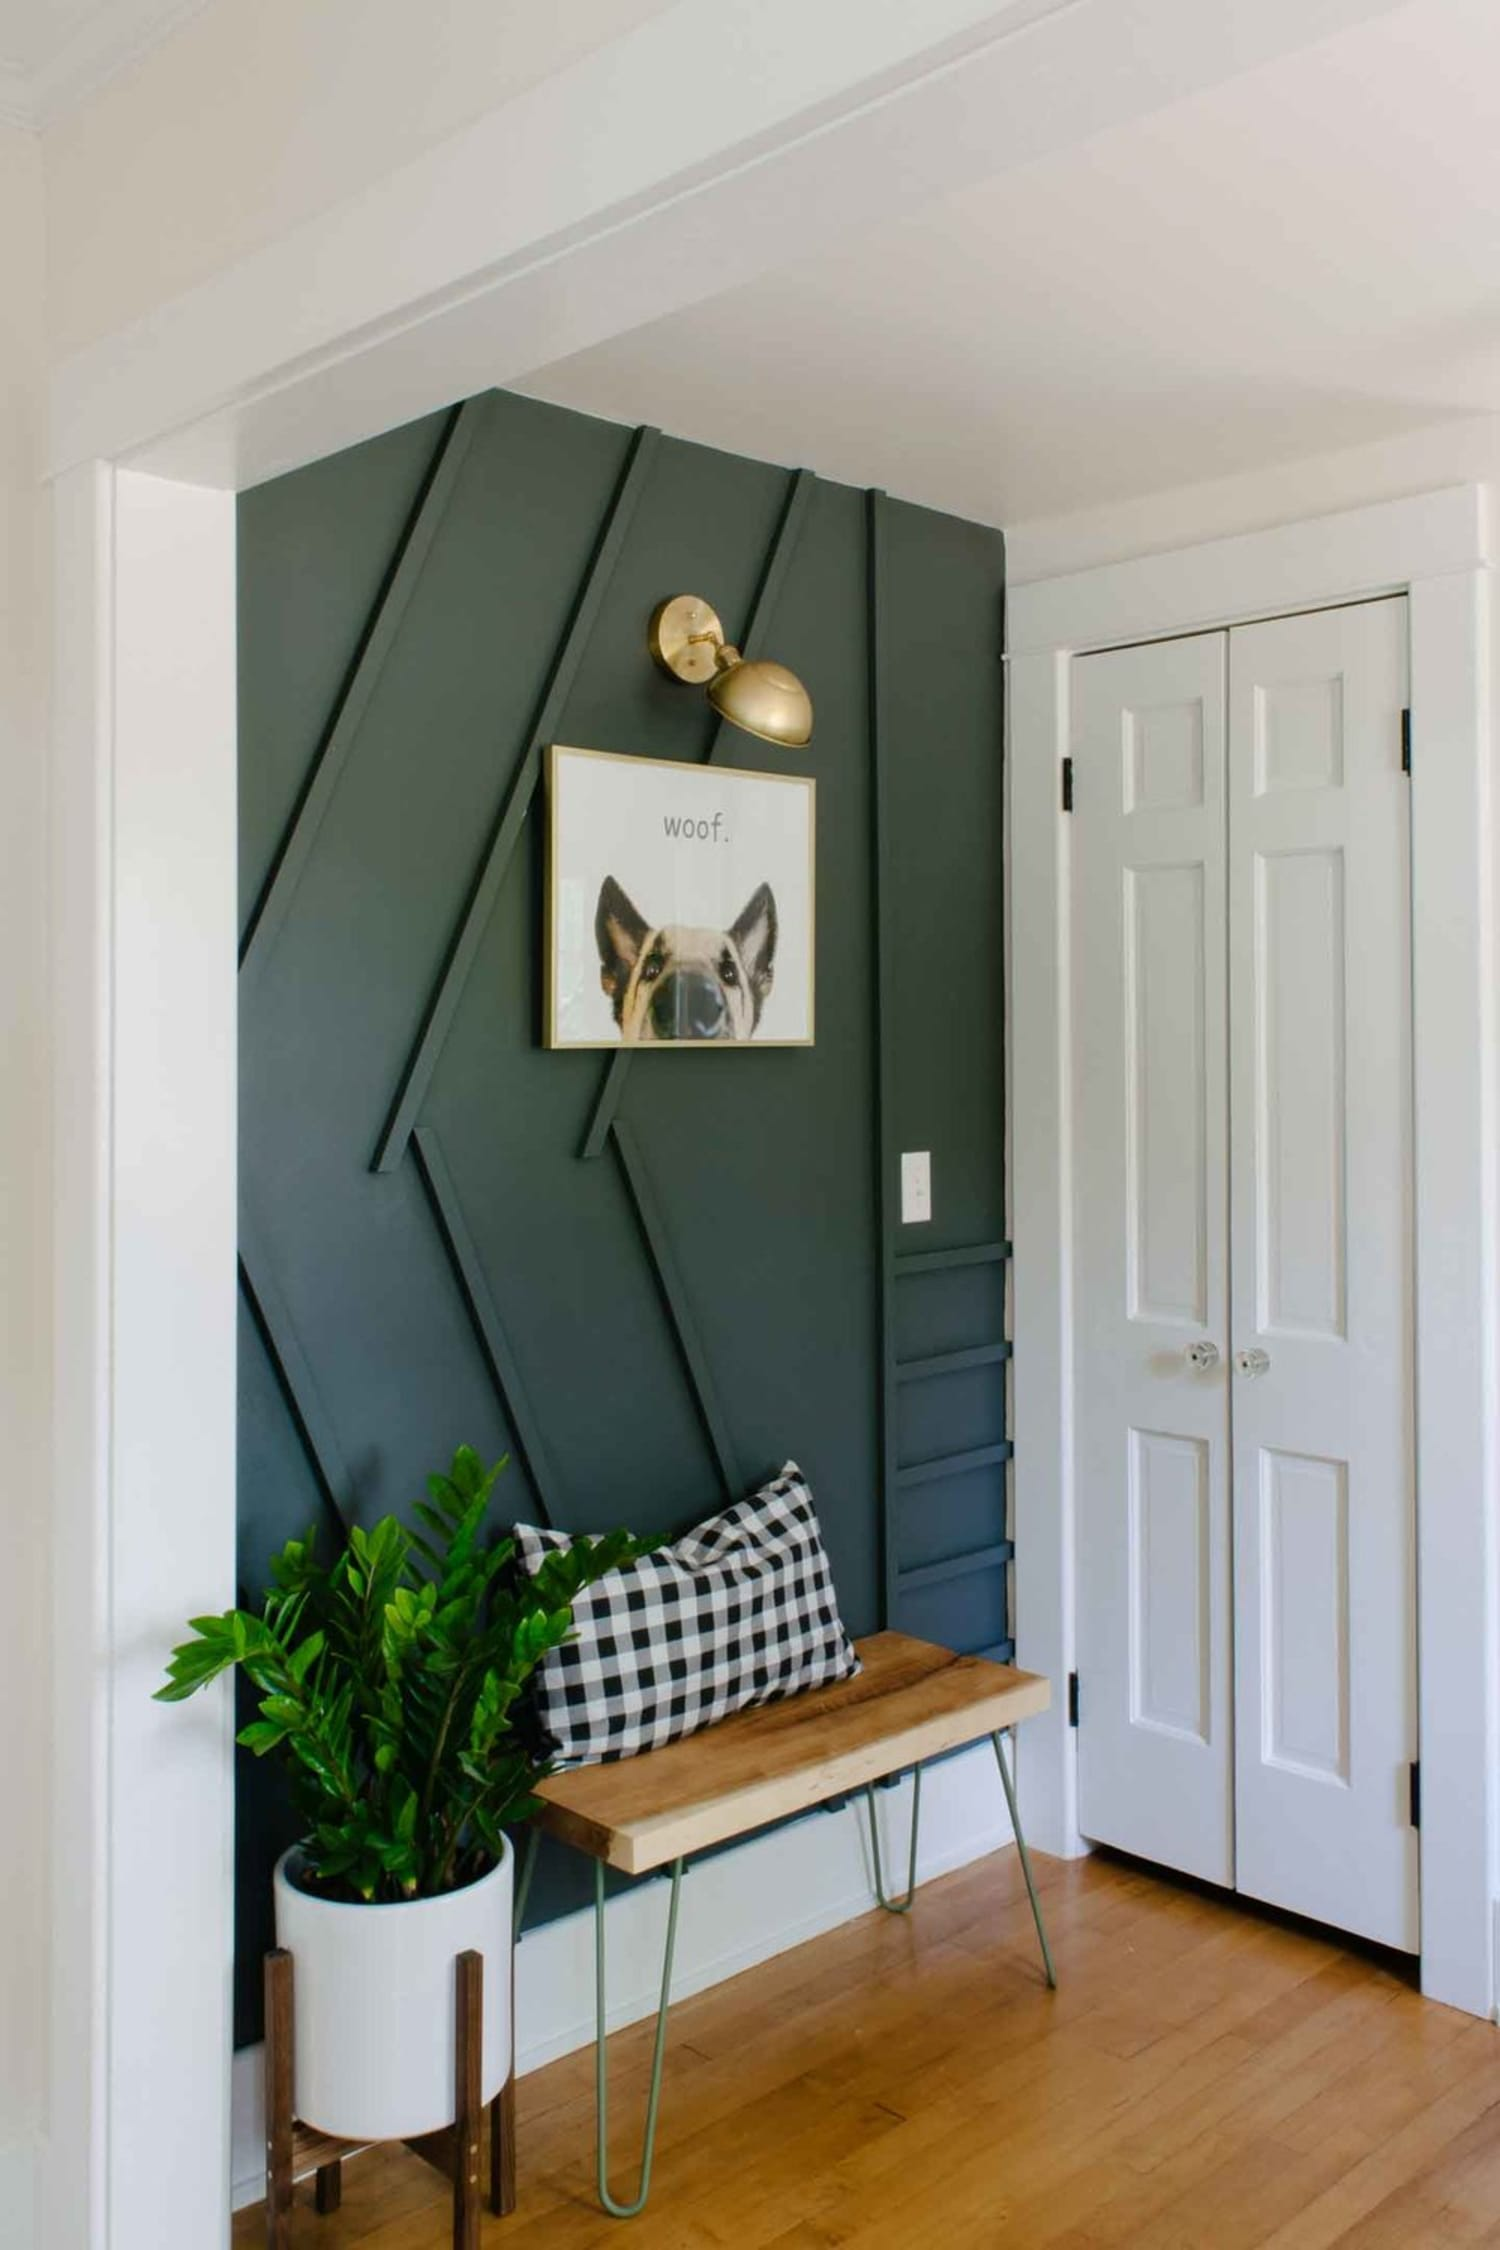 7 Ways to Make Your Entryway So Good, You'll Want to Hang Out There